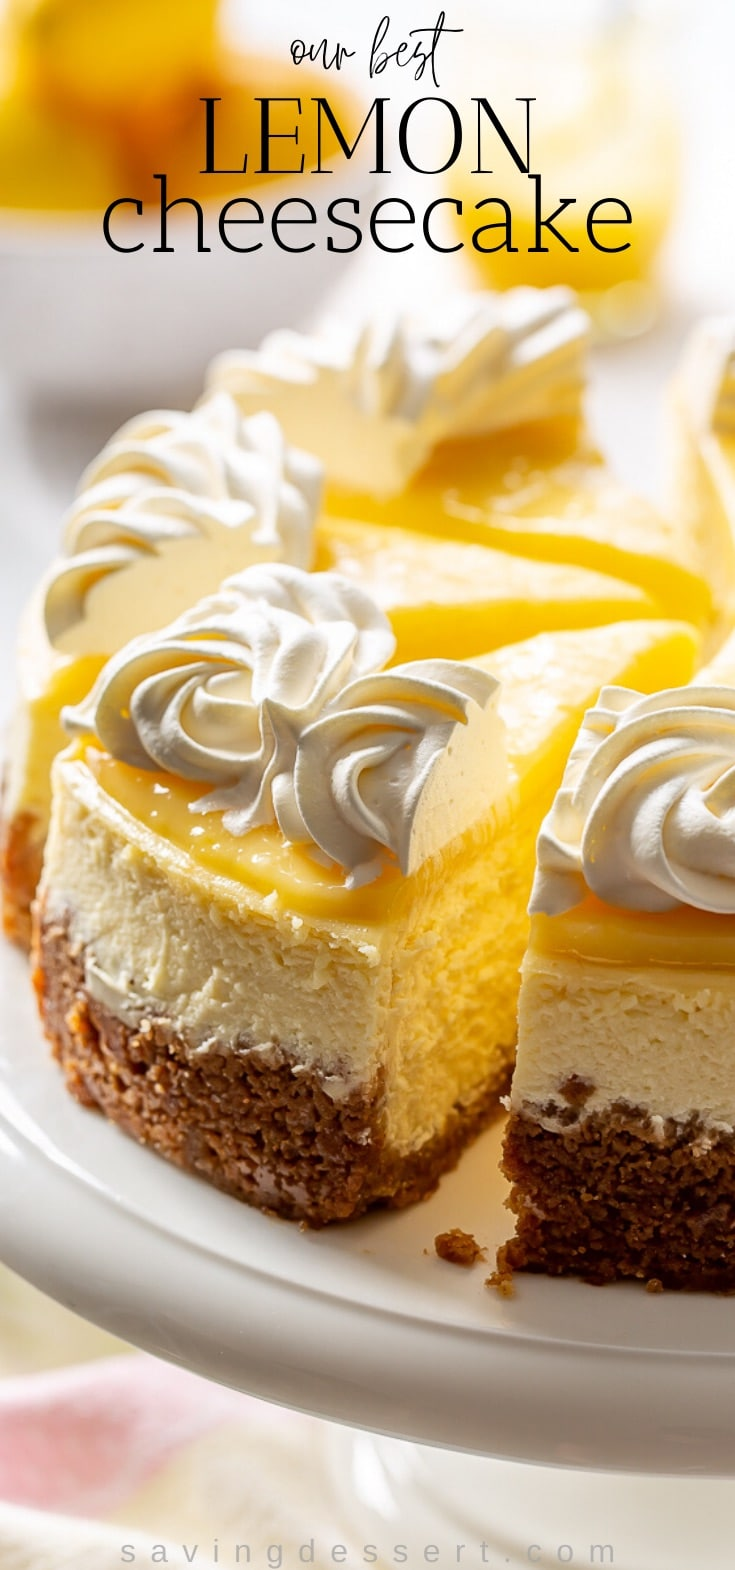 A sliced lemon cheesecake topped with lemon curd